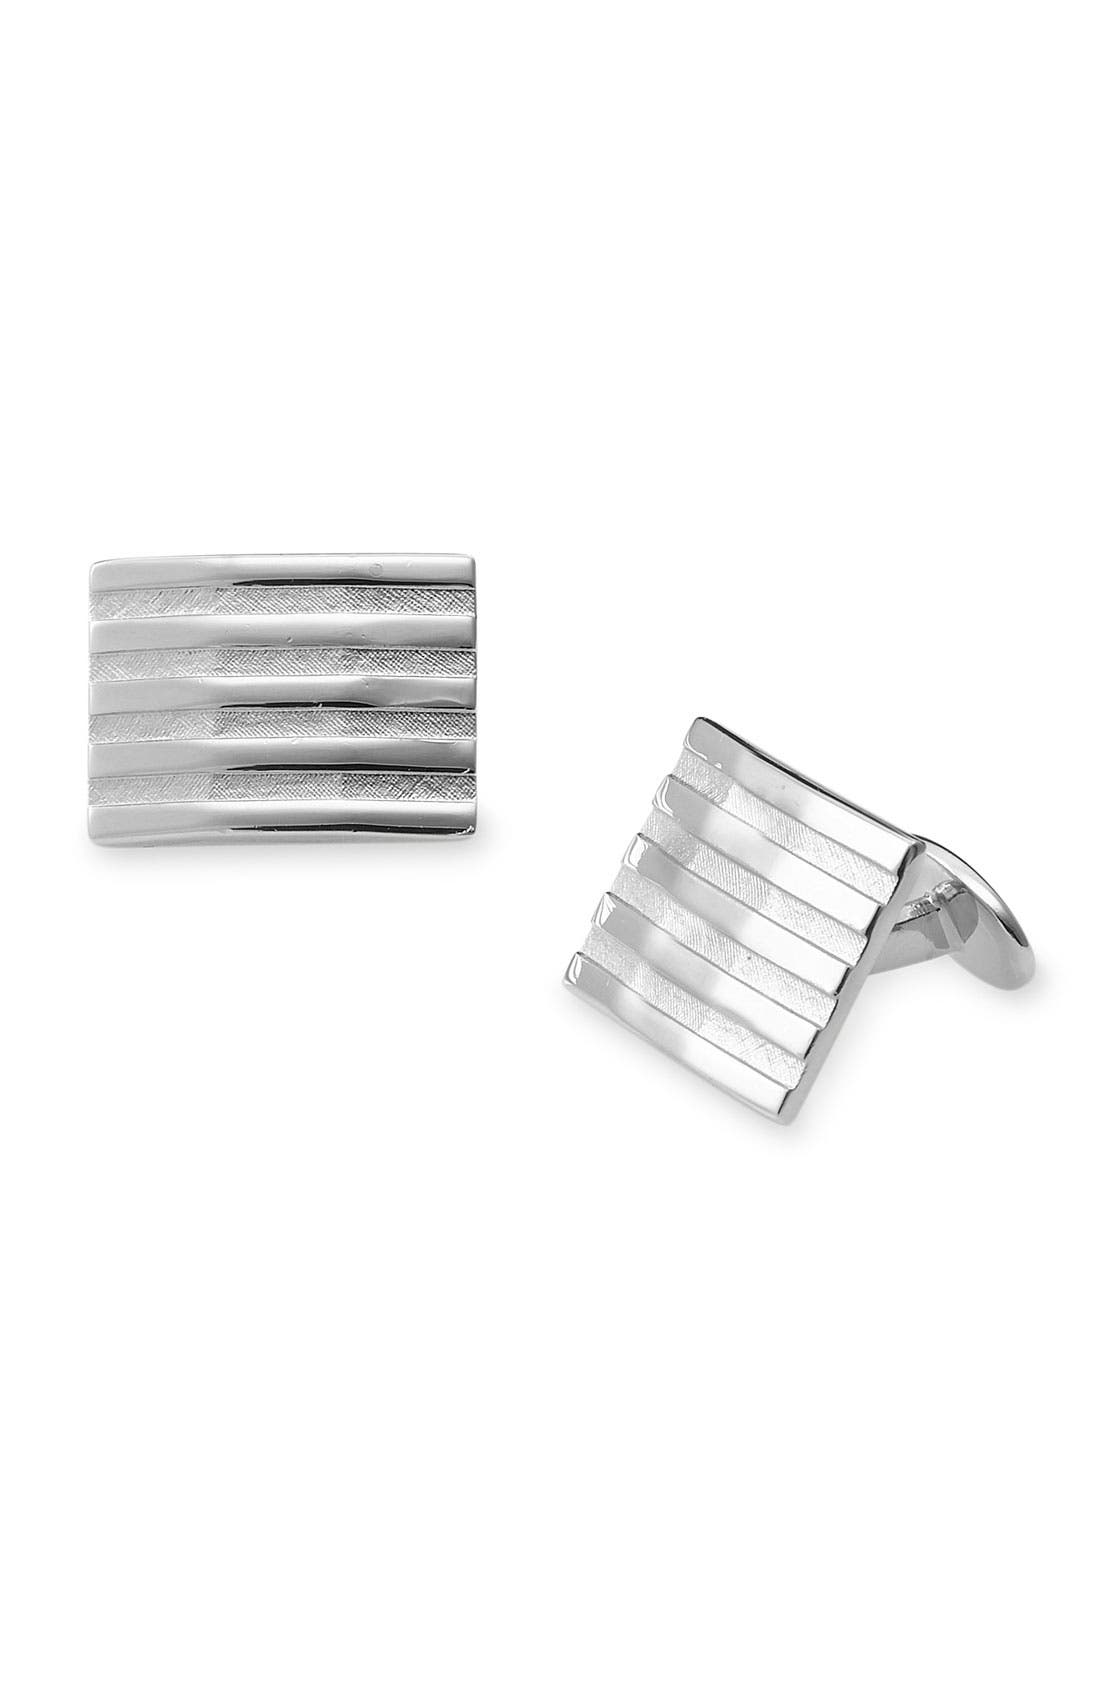 Main Image - David Donahue Sterling Silver Cuff Links